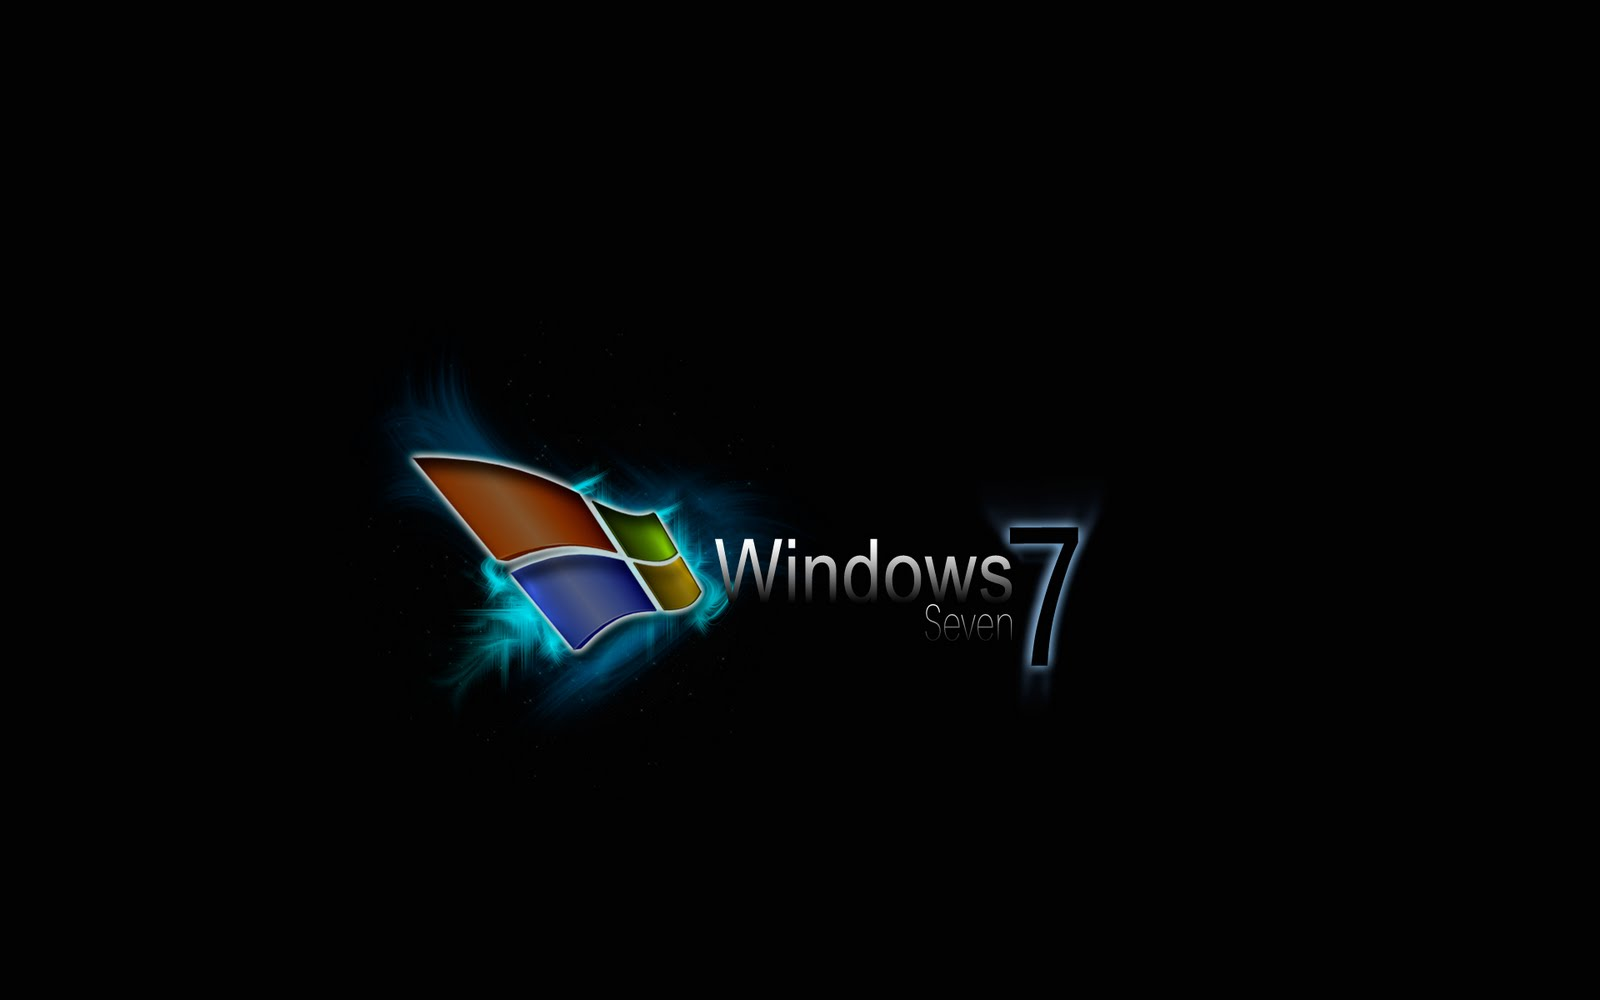 http://1.bp.blogspot.com/_9NA3eH4VZzA/TIPTjahO4YI/AAAAAAAACQY/R6TCOCw-Sao/s1600/Windows+7+ultimate+collection+of+wallpapers+%2839%29.jpg